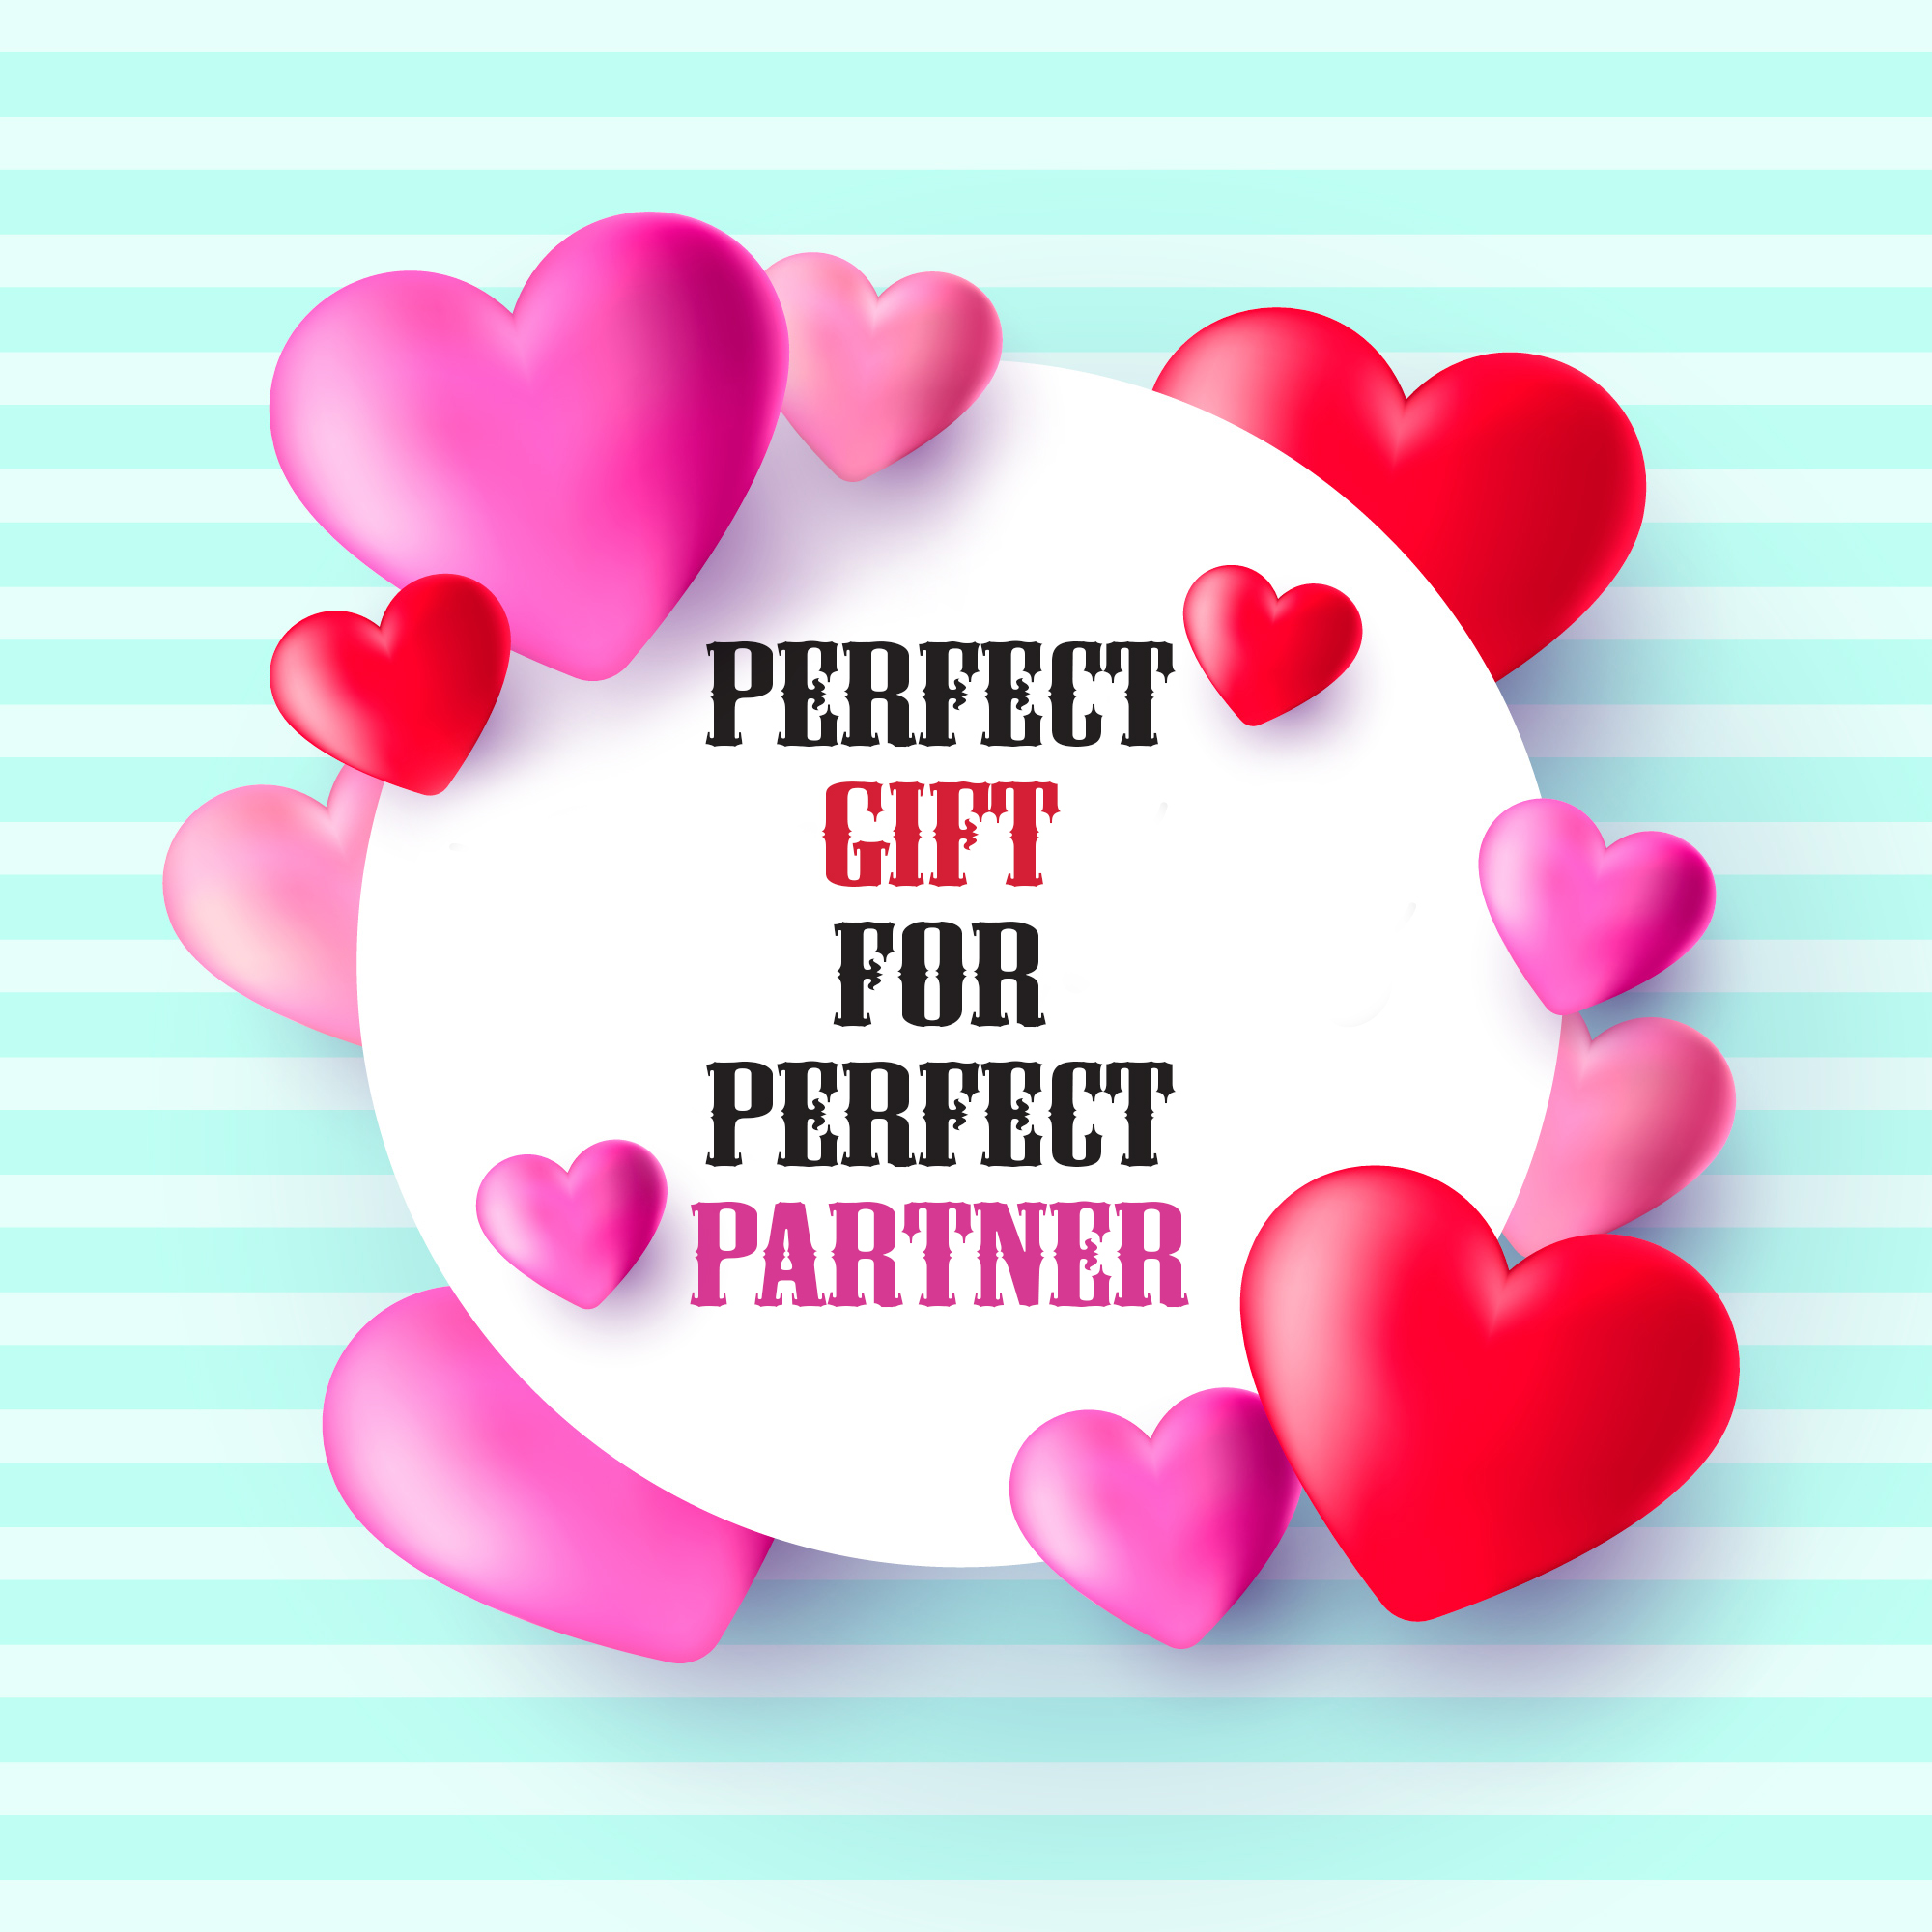 Perfect Outdoor Gifts For Perfect Partner